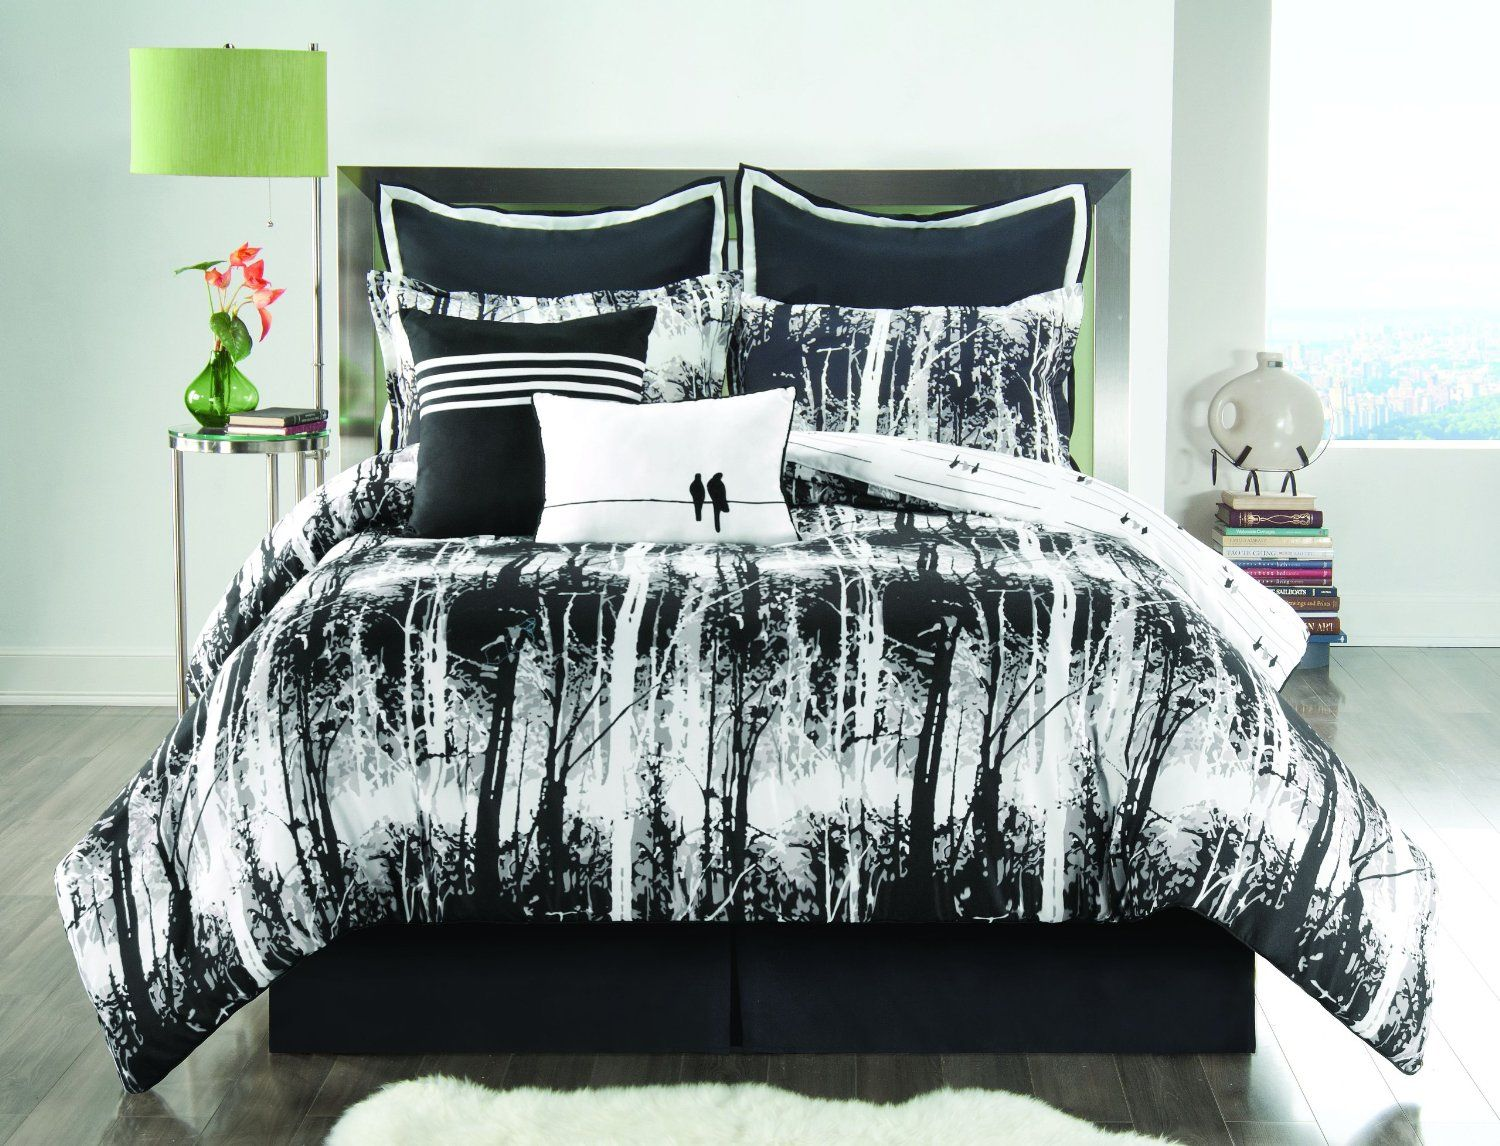 wood comforters with paint white cover sets bedding wall gray cool duvet light bed color linen collections modern comforter frames calm unique bedroom comfy black set ideas